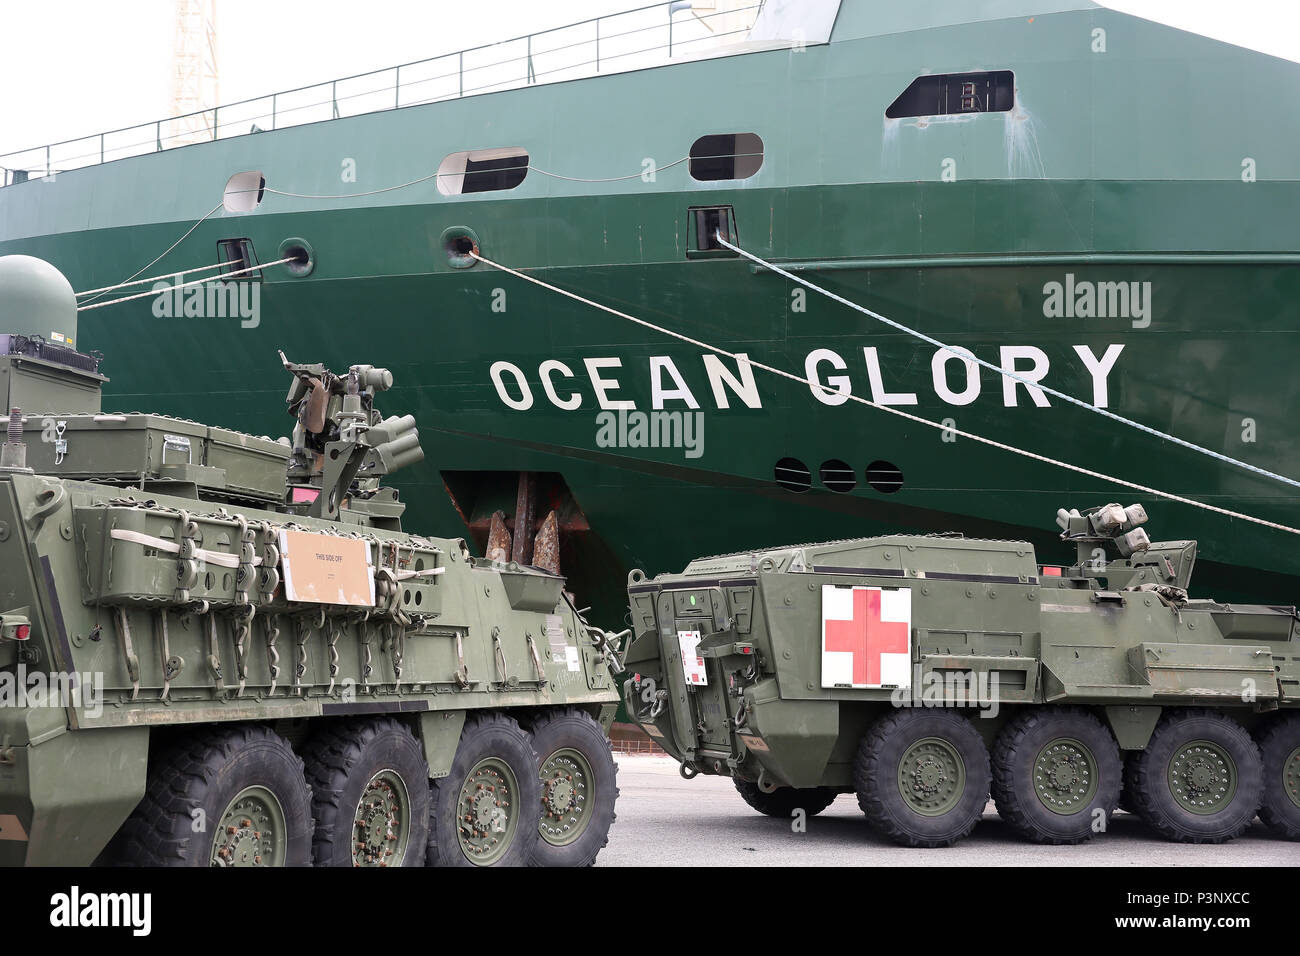 160712-N-IX266-014 SATTAHIP, Thailand—A line of M1126/M1133 Strykers is staged portside of the general purpose, heavy lift ship MV OCEAN GLORY during a backload of equipment at Chuk Samet, here, from exercise Hanuman Guardian, July 12. Military Sealift Command's contracted voyage-charter MV OCEAN GLORY recently conducted a backload of about 250 items in Thailand as part of U.S. Army Pacific's mobility operation PACIFIC PATHWAYS 16-2. (U.S. Navy photo by Grady T. Fontana/Released) - Stock Image